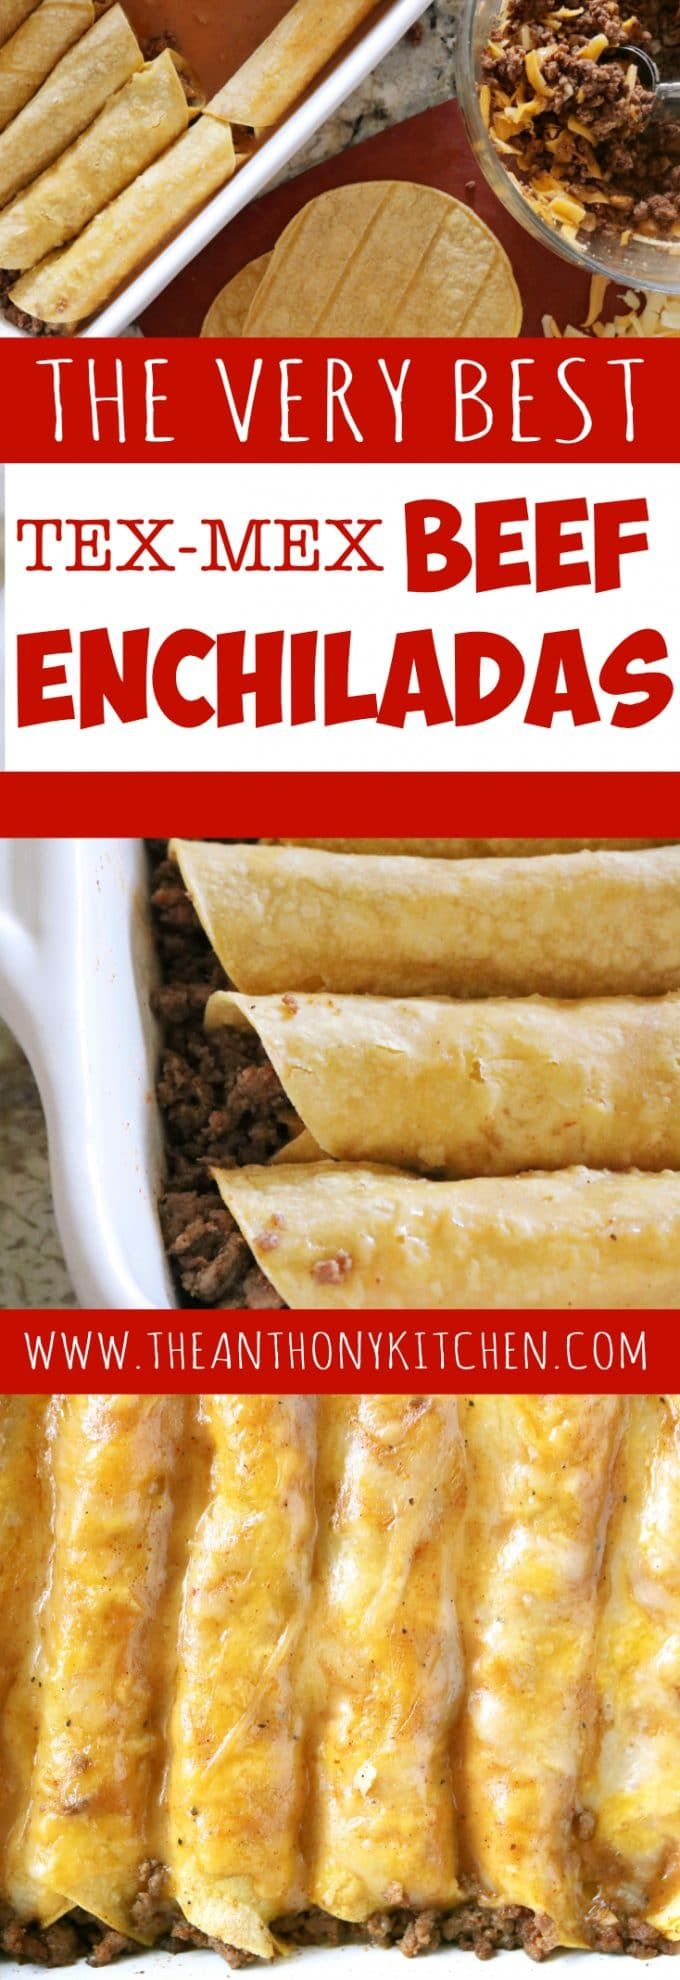 Tex-Mex beef enchiladas | Featuring ground beef enchiladas, a homemade beef gravy, and a freshly grated cheese blend | #thebestbeefenchiladas #enchiladarecipe #texmexrecipes #mexicanfood #groundbeefrecipe